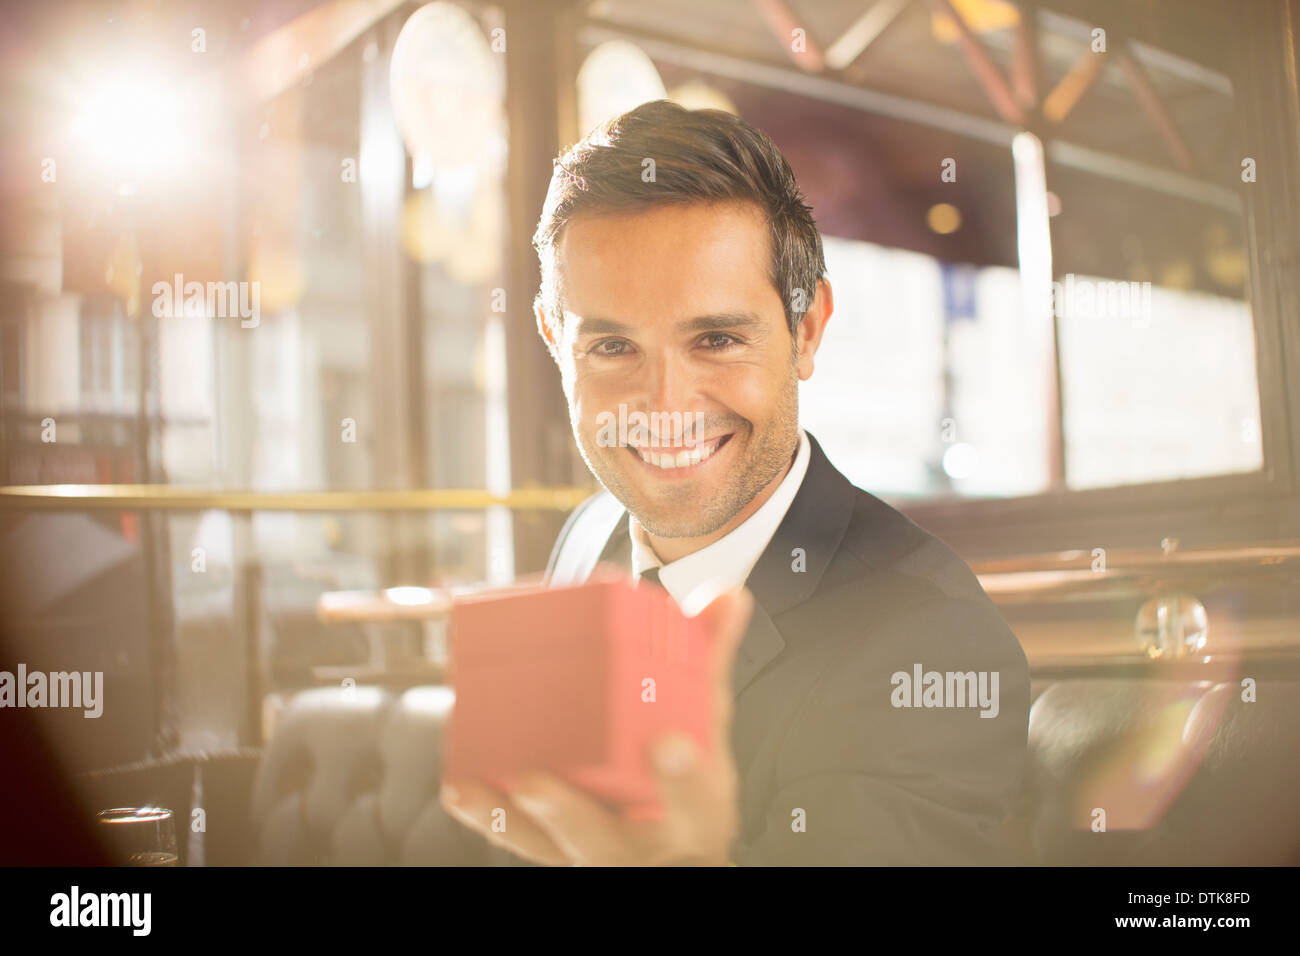 Well-dressed man holding jewelry box in restaurant - Stock Image